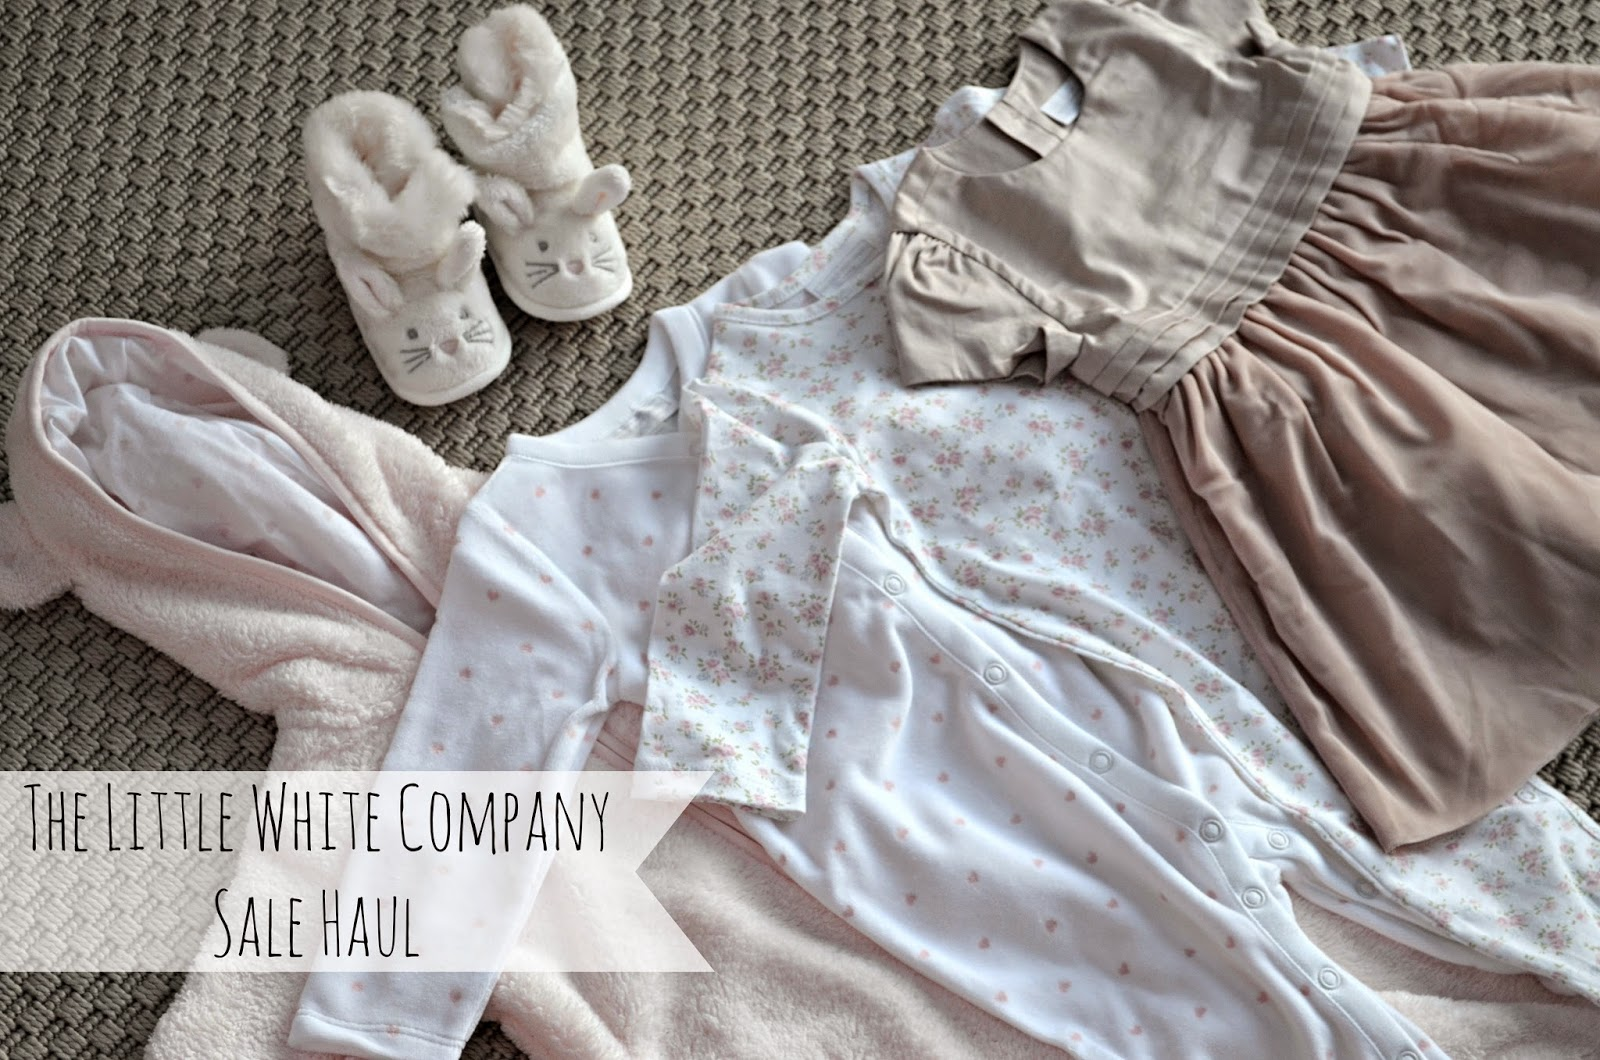 the little white company sale haul